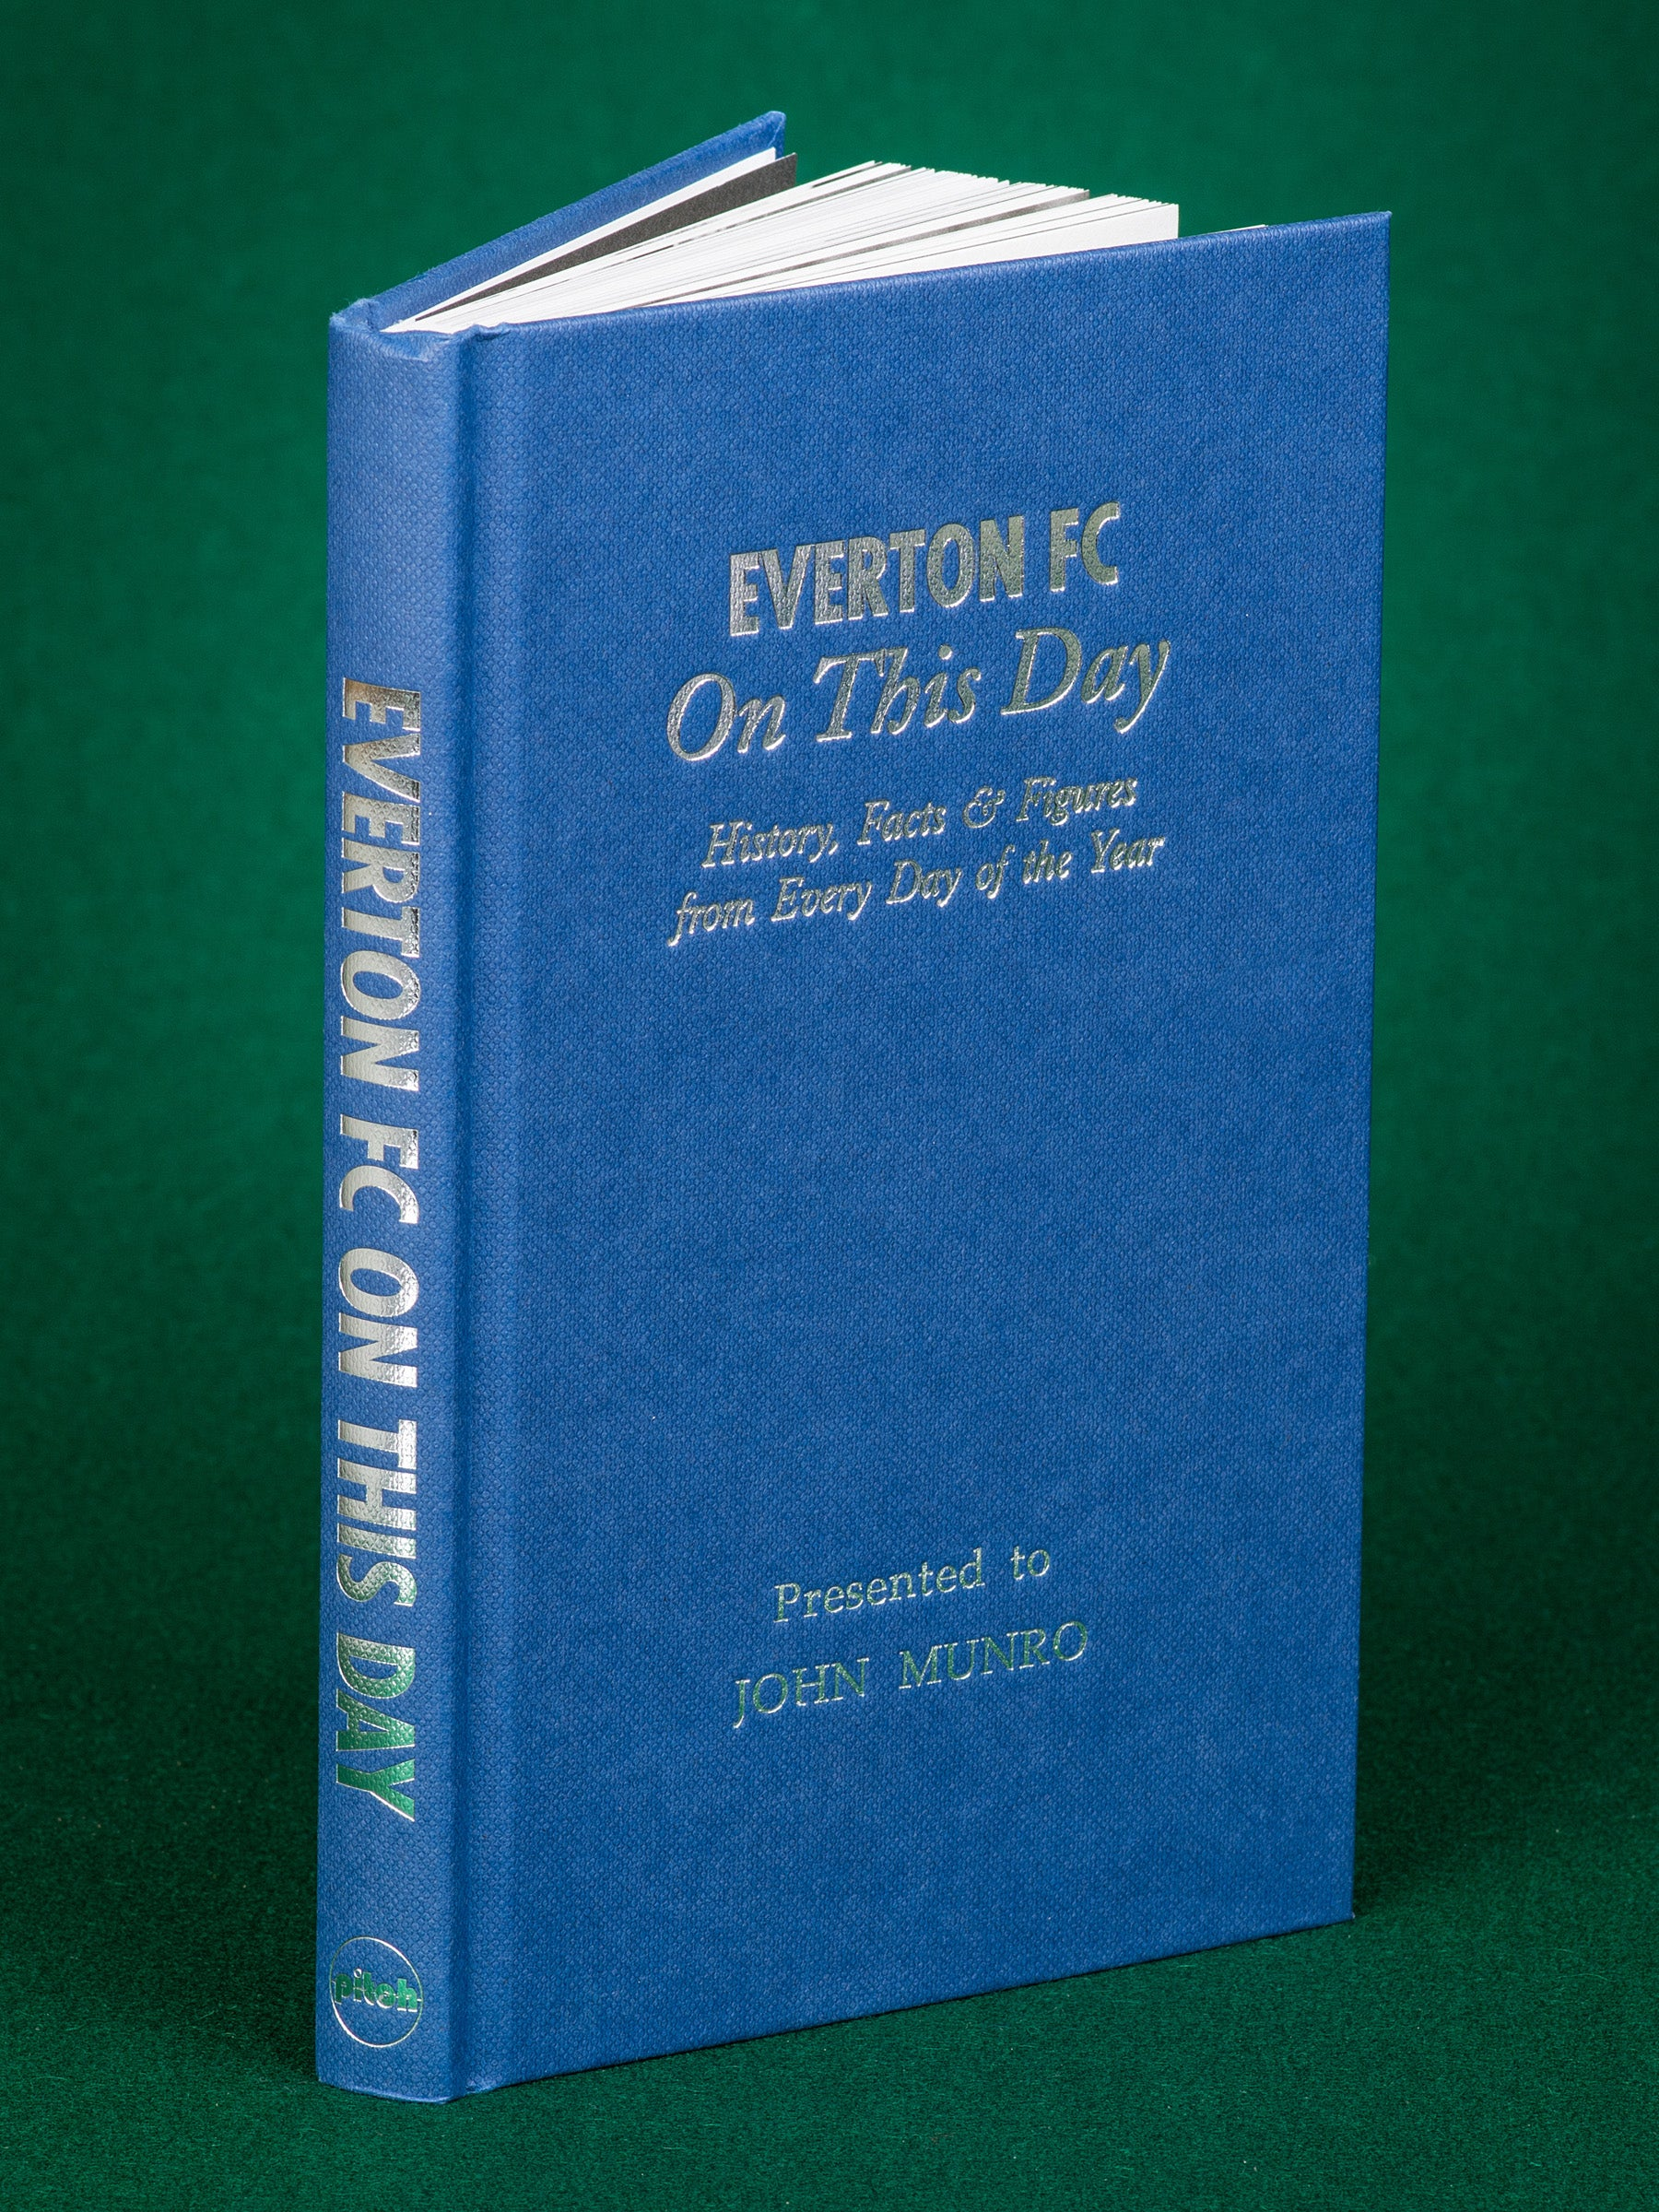 Personalised Book Everton On This Day History Goodison Park Rooney Peter Reid